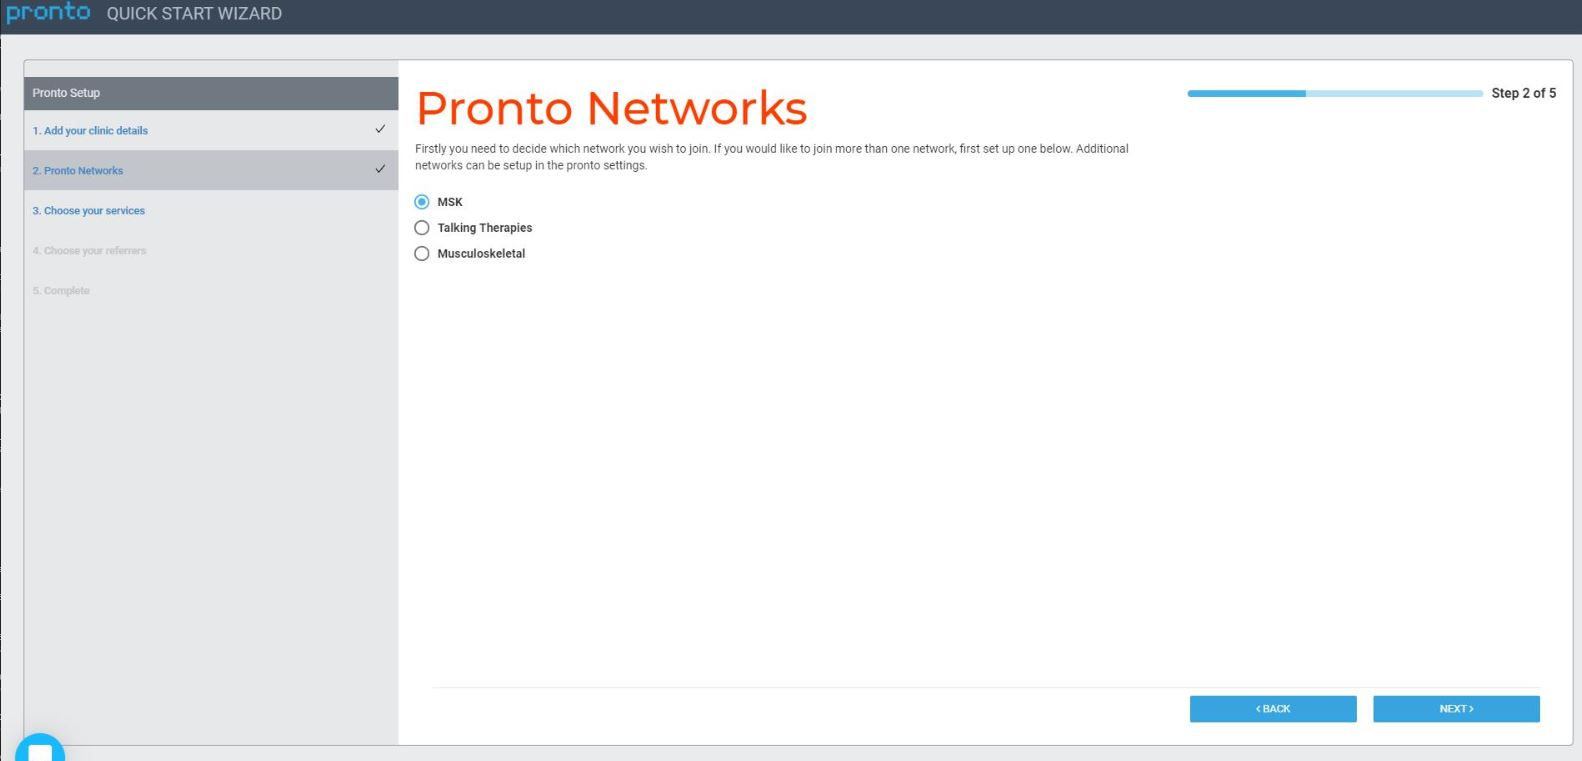 Network Selection